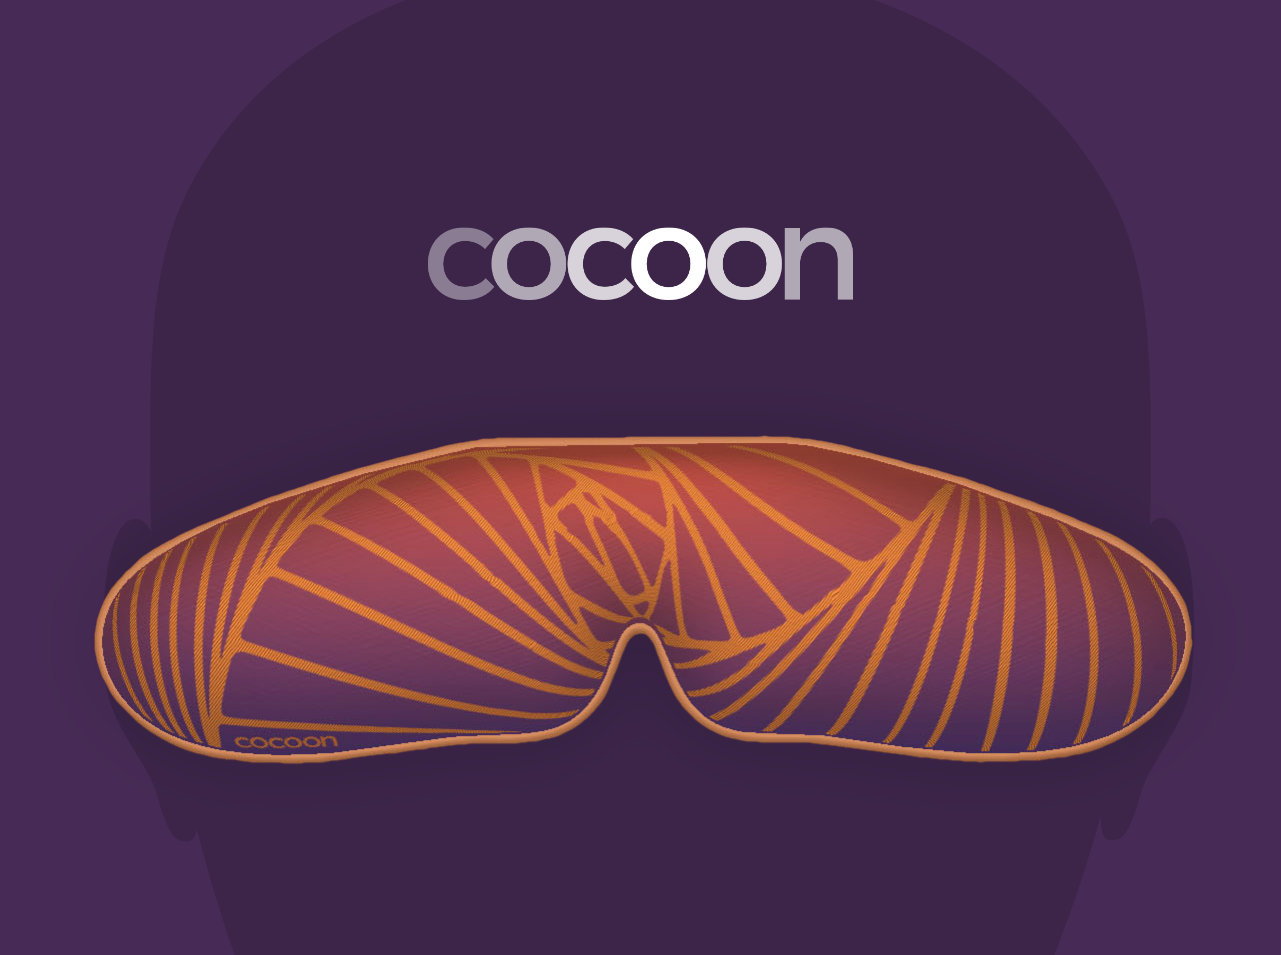 Cocoon Display